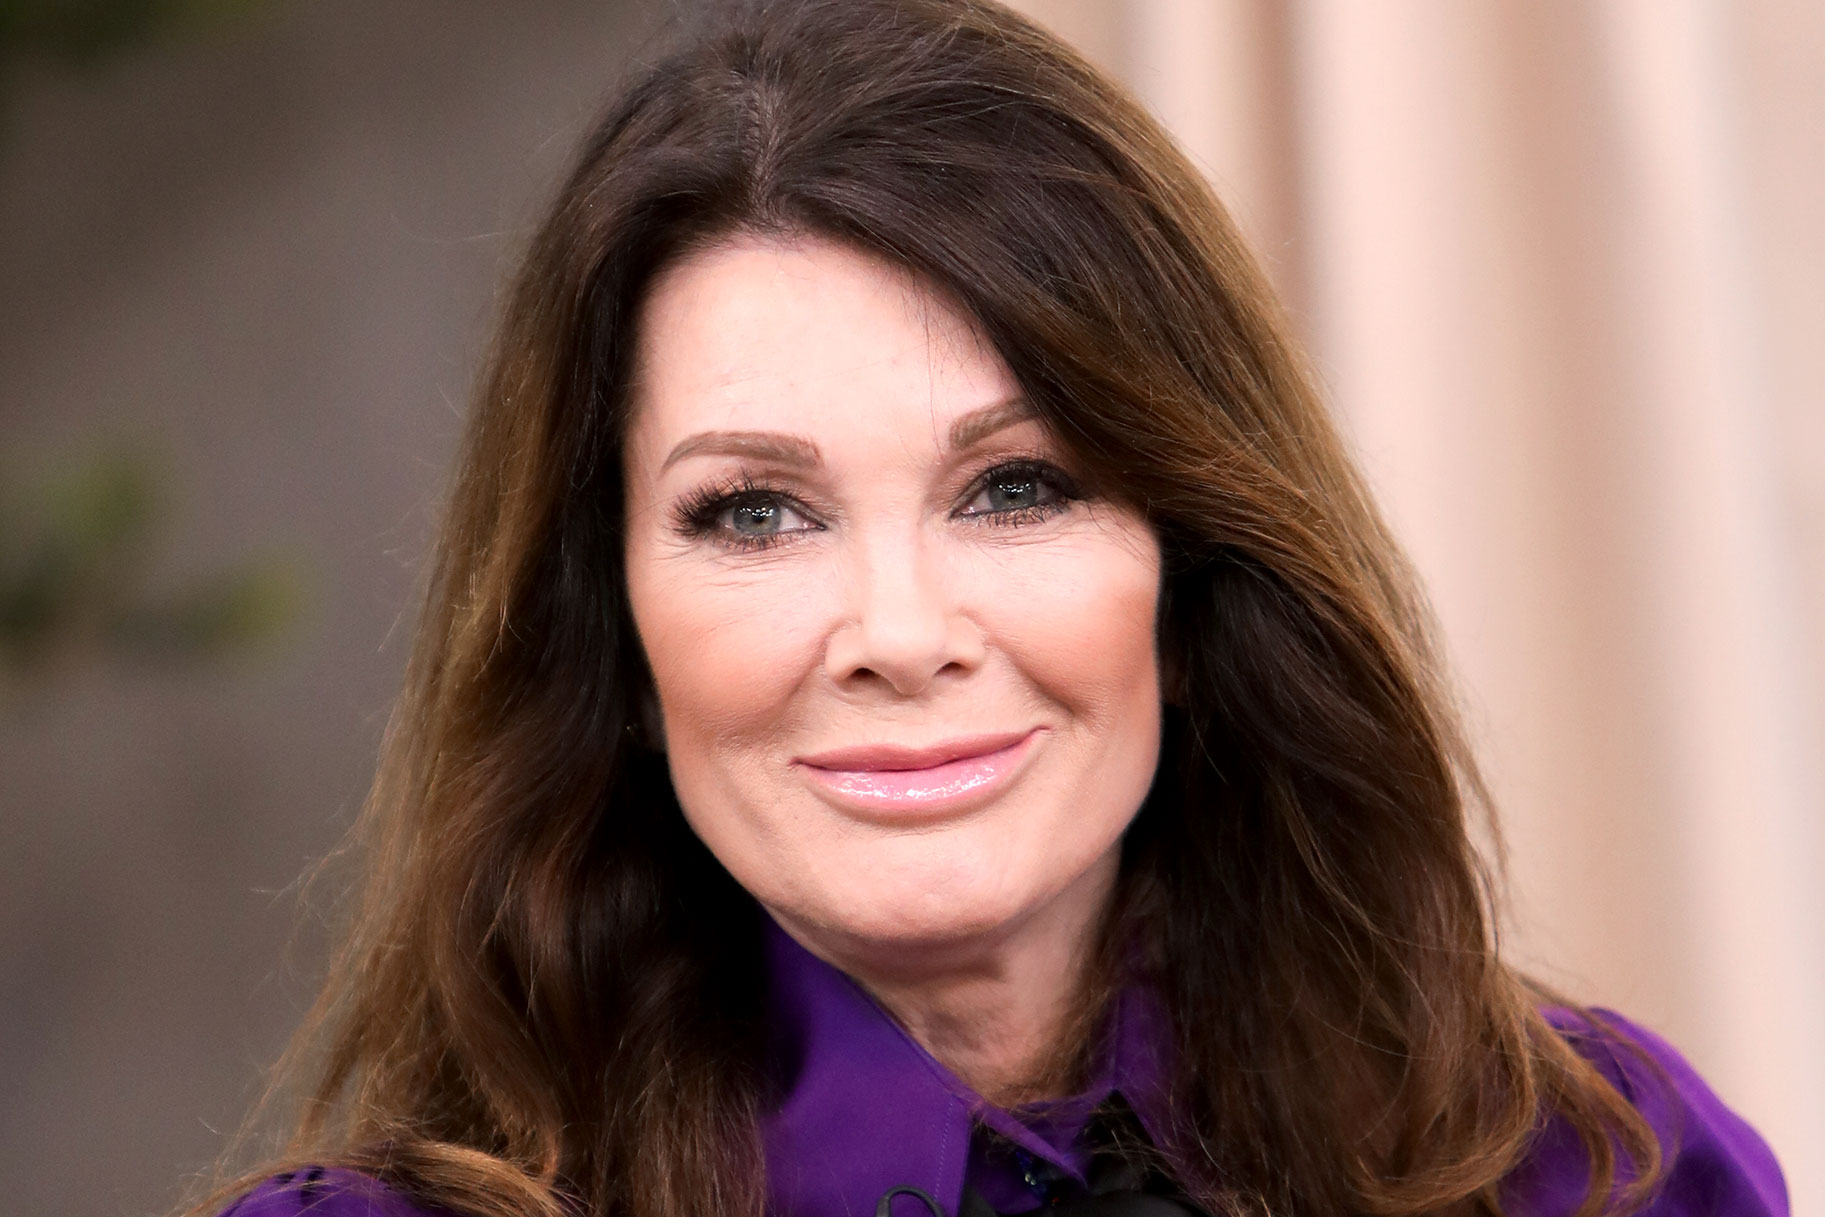 Lisa Vanderpump Rhobh Vpr Home